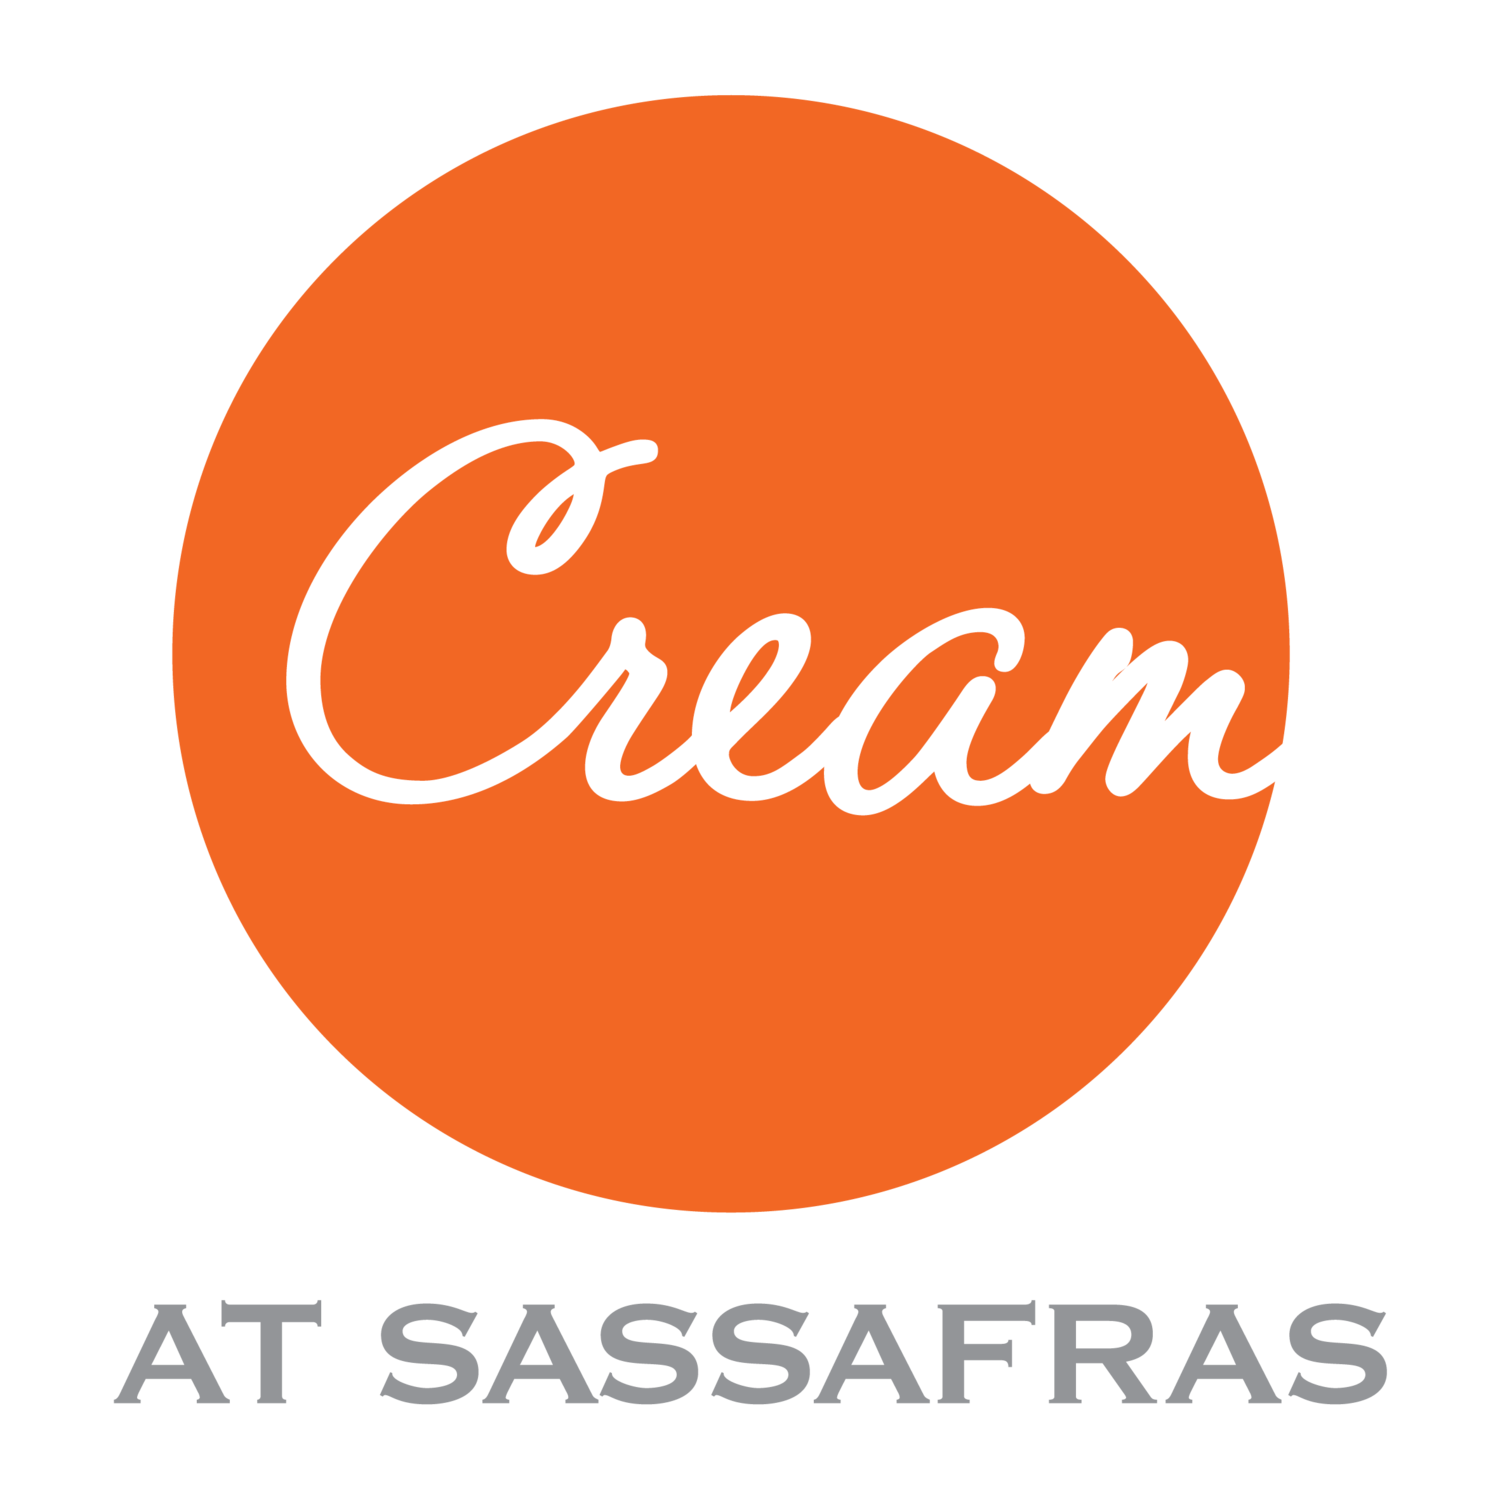 Cream at Sassafras